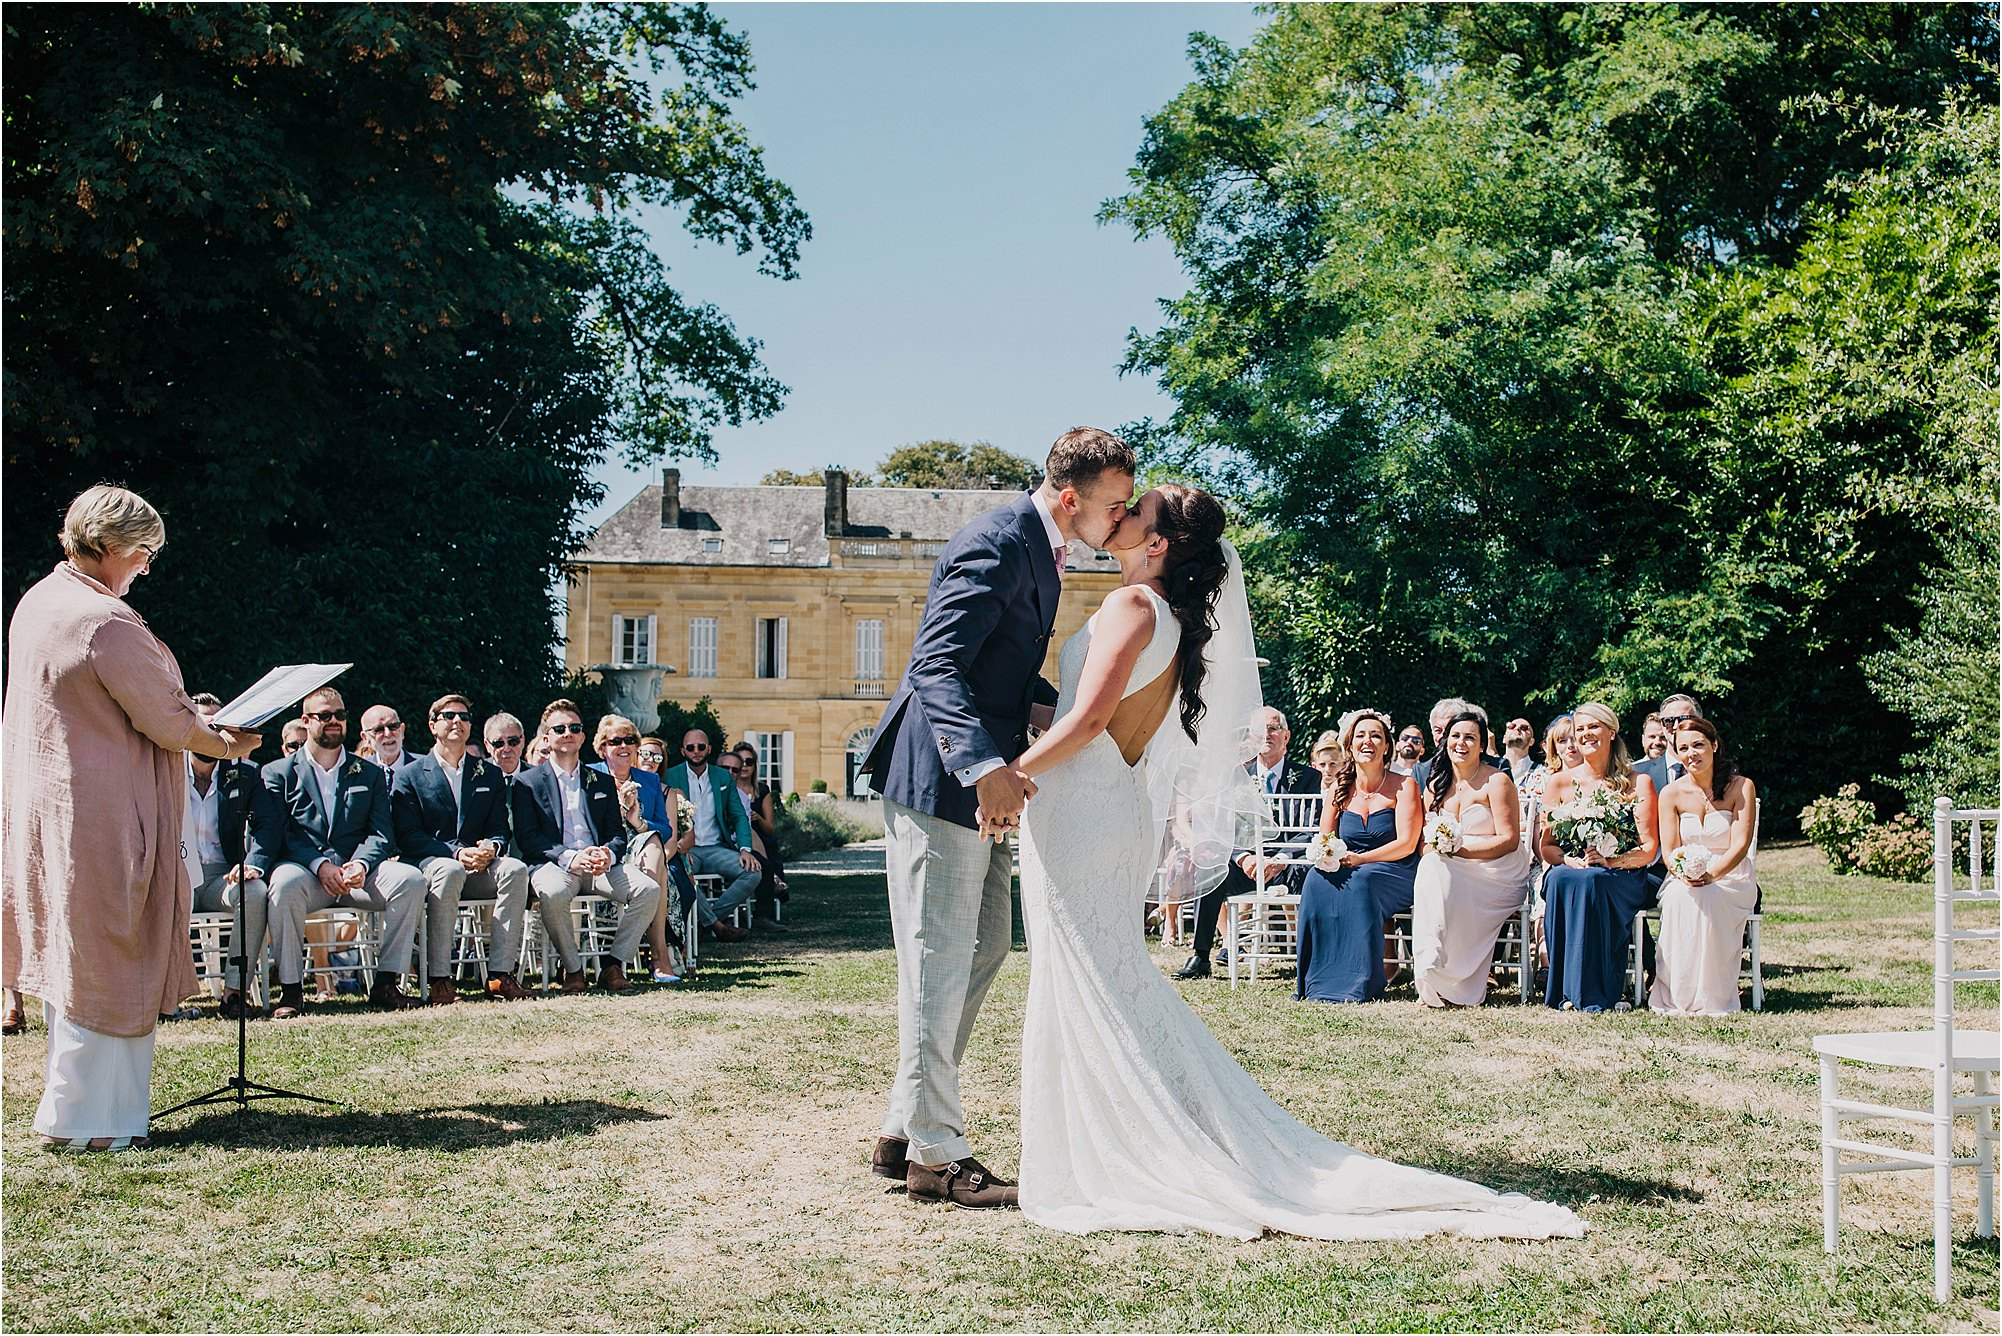 the first kiss at an outdoor ceremony at chateau la durantie